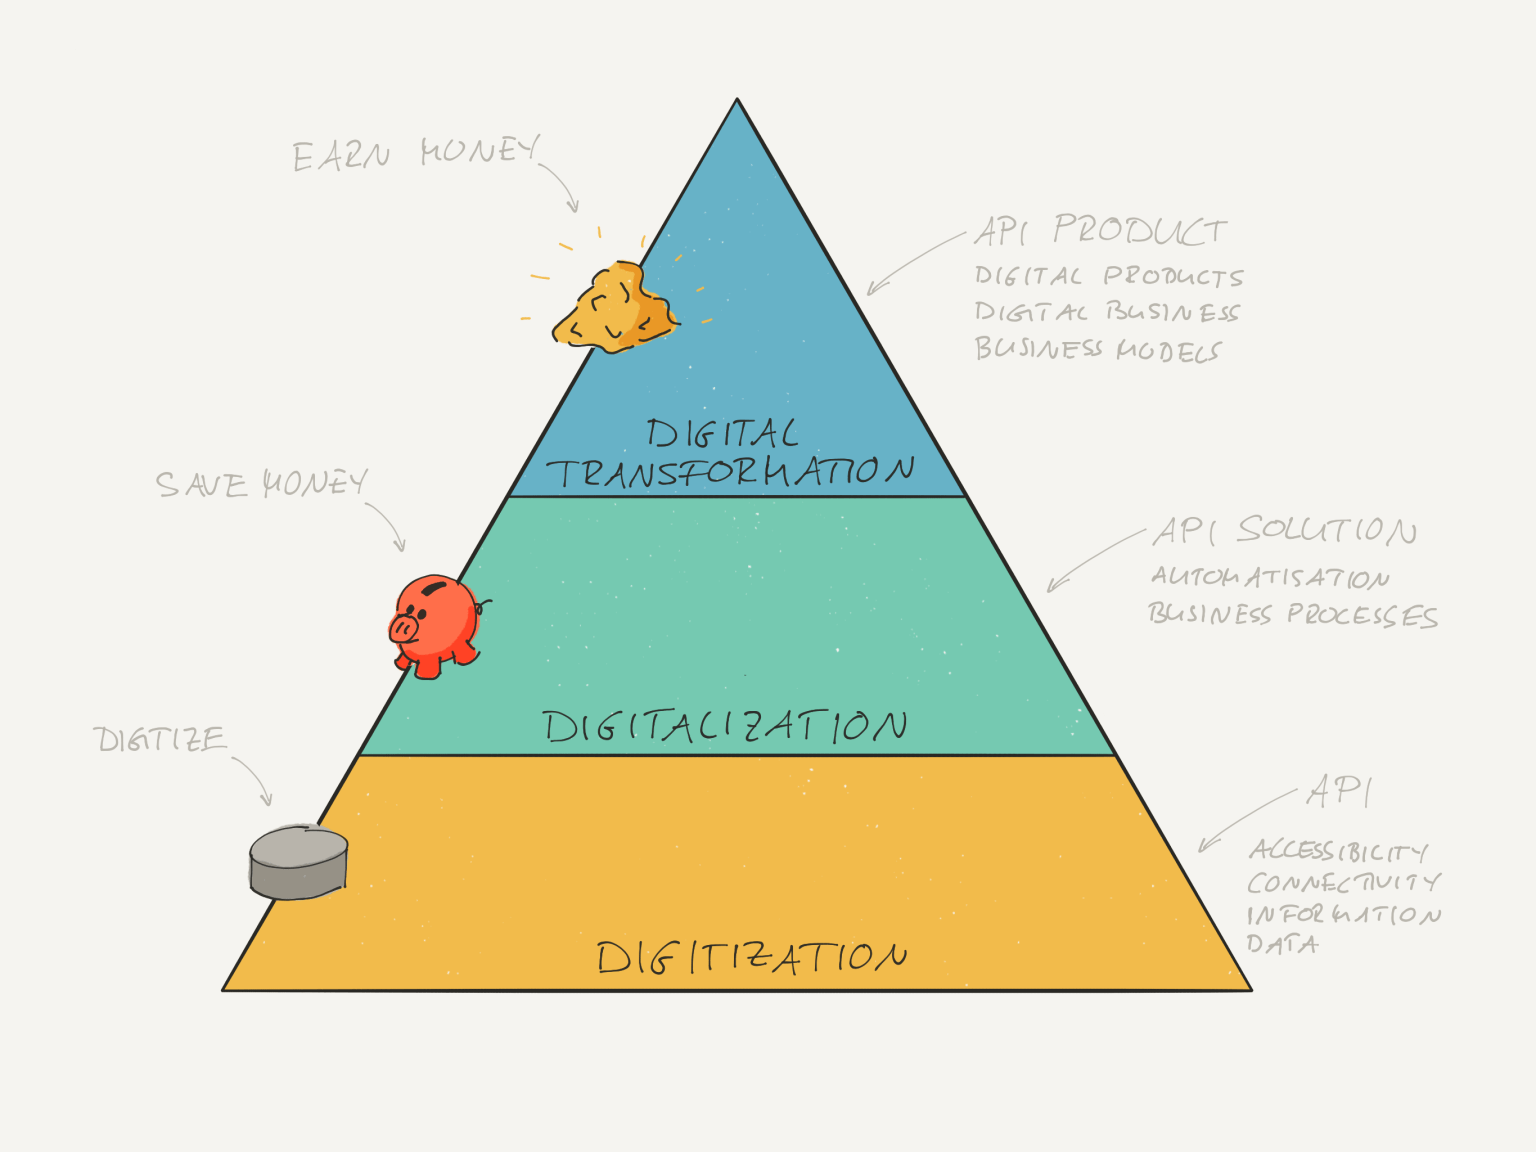 Pyramid of Digitalisation and API